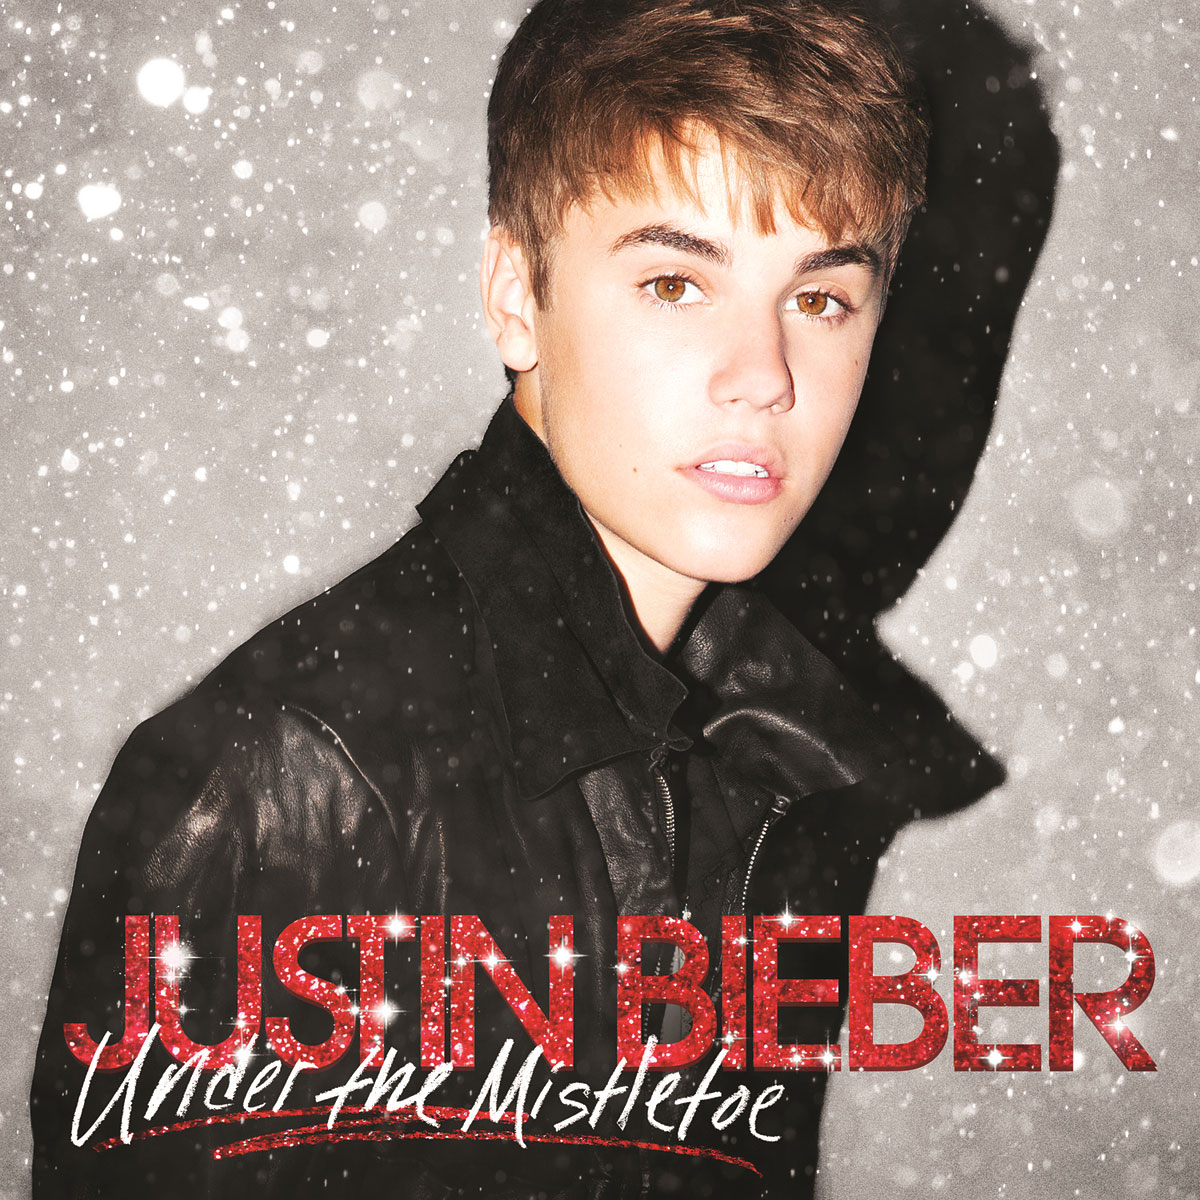 """Justin Bieber Through The Years Under The Mistletoe - Hot off the success of Never Say Never , Bieber released his Christmas album, Under the Mistletoe . In addition to lead single """"Mistletoe,"""" he teamed up with Mariah Carey for a """"superfestive"""" rendition of her 1994 classic """"All I Want for Christmas Is You."""""""